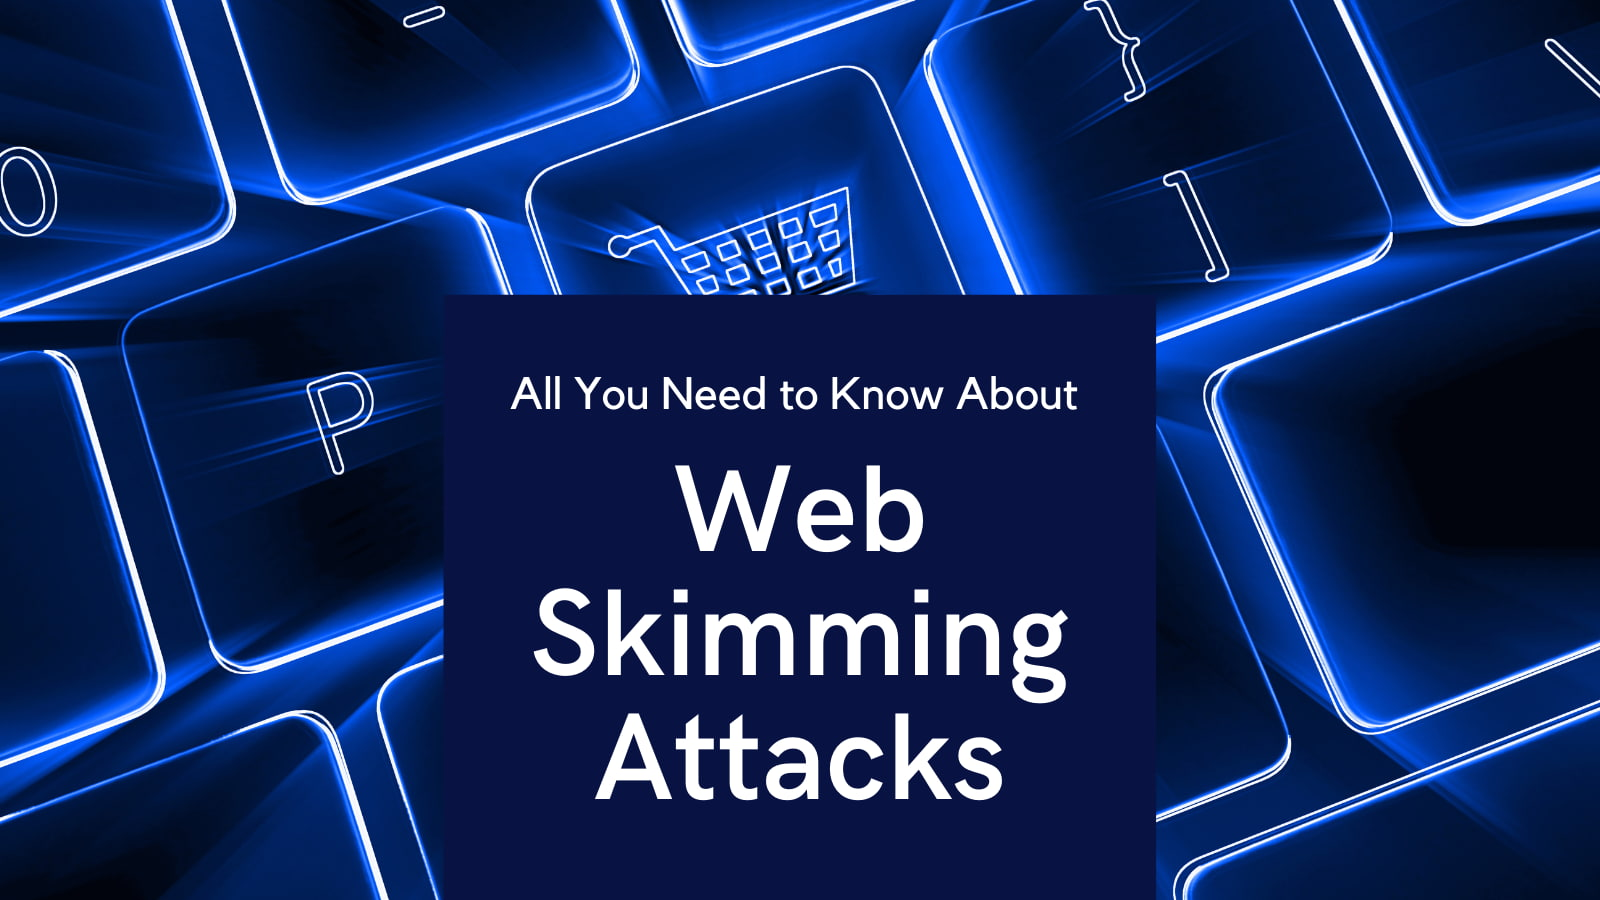 All You Need to Know About Web Skimming Attacks